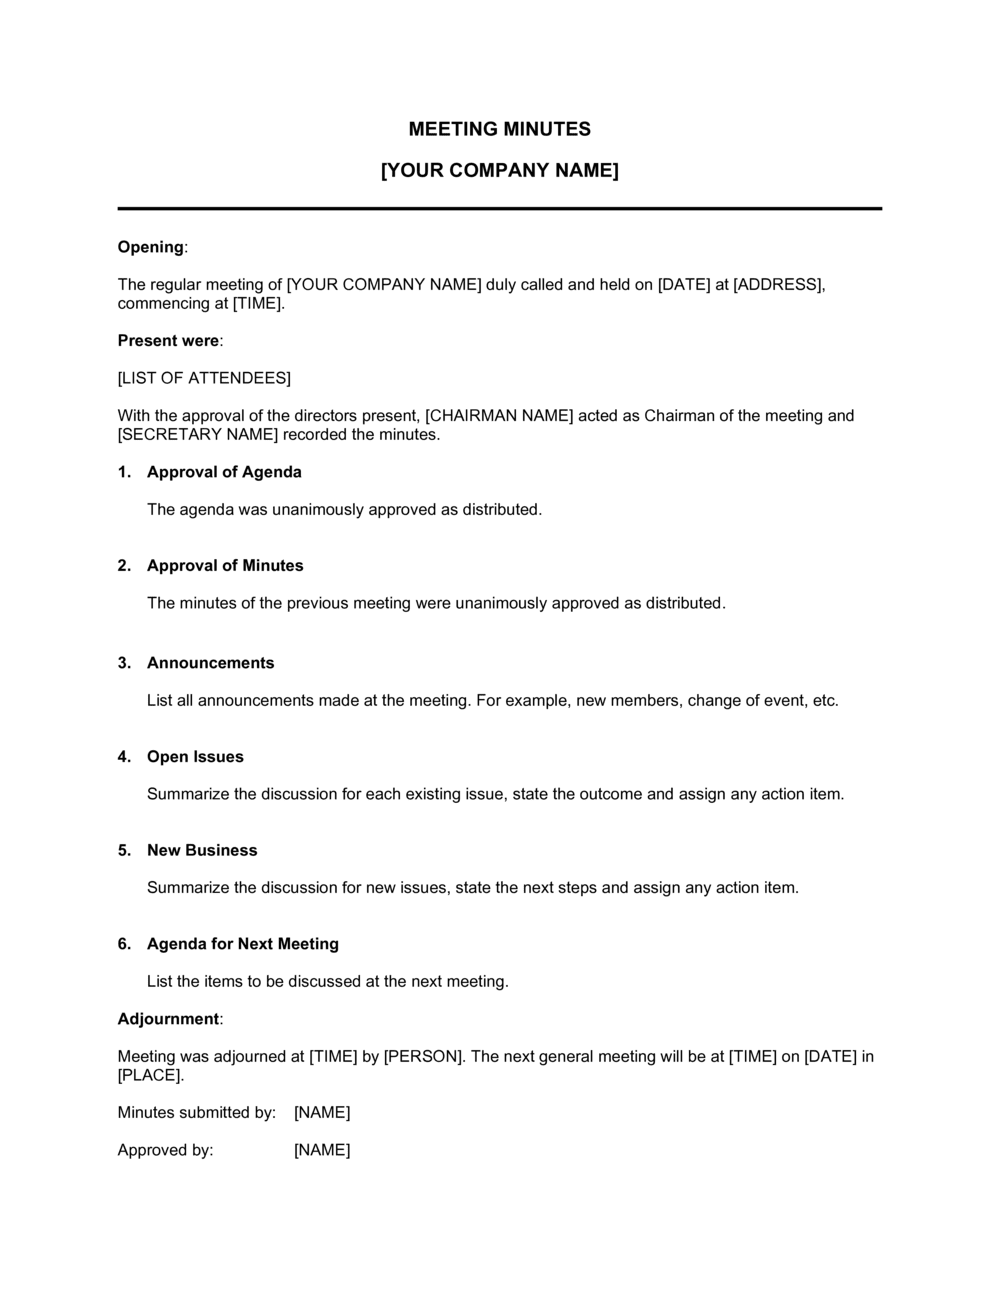 Business-in-a-Box's Minutes for a Formal Meeting Template